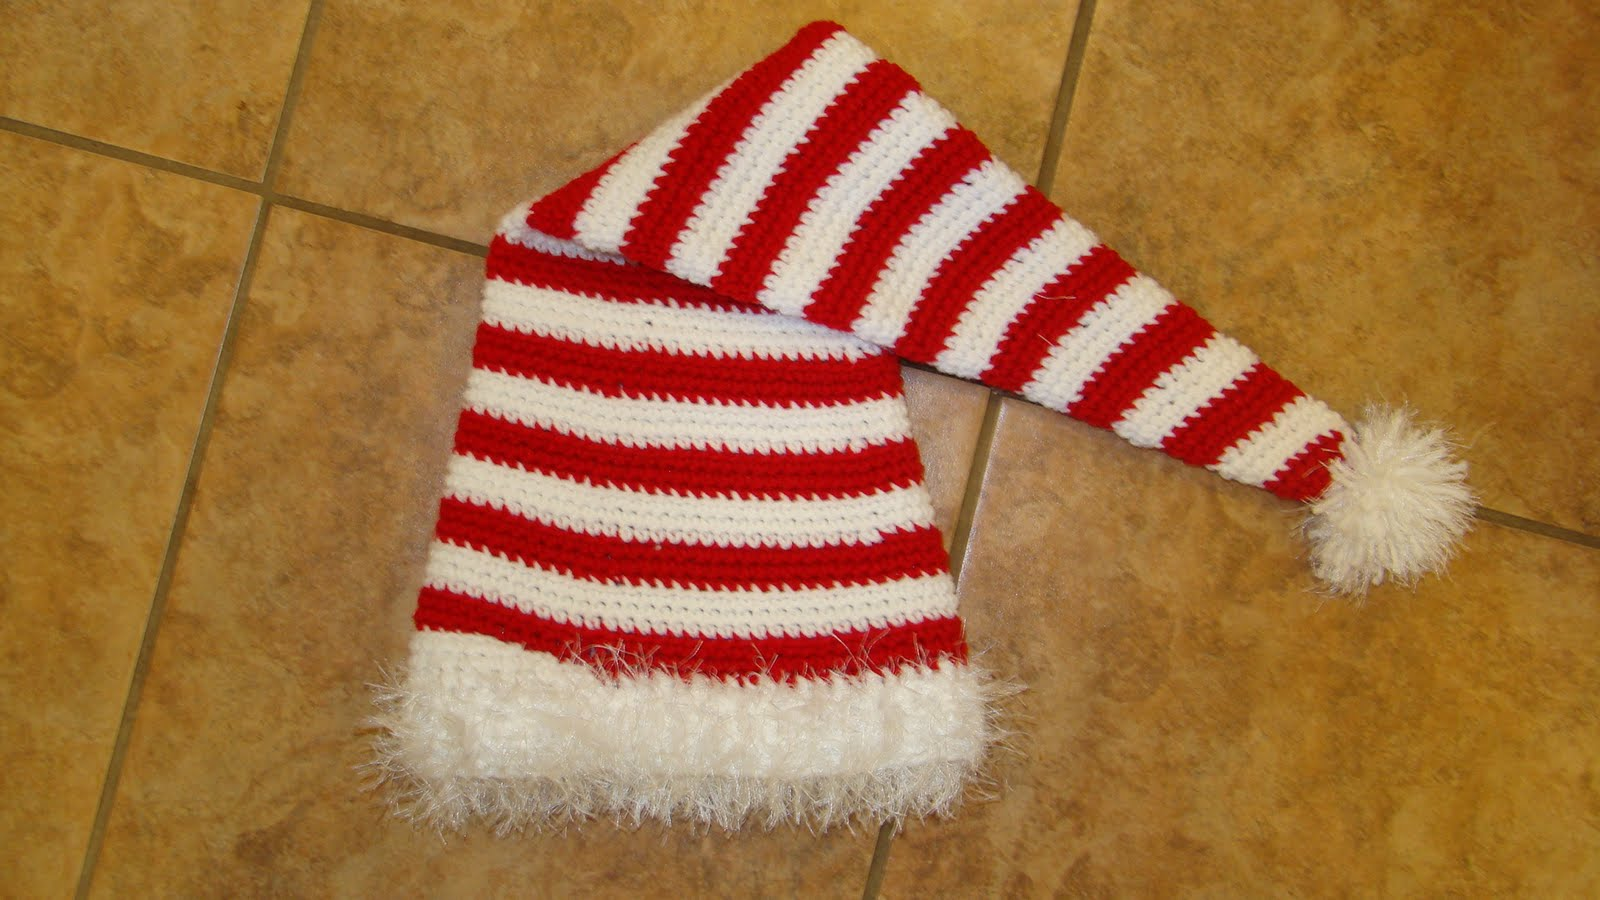 Crafts By Starlight: Christmas Crafts - Crochet Candy Cane Hat